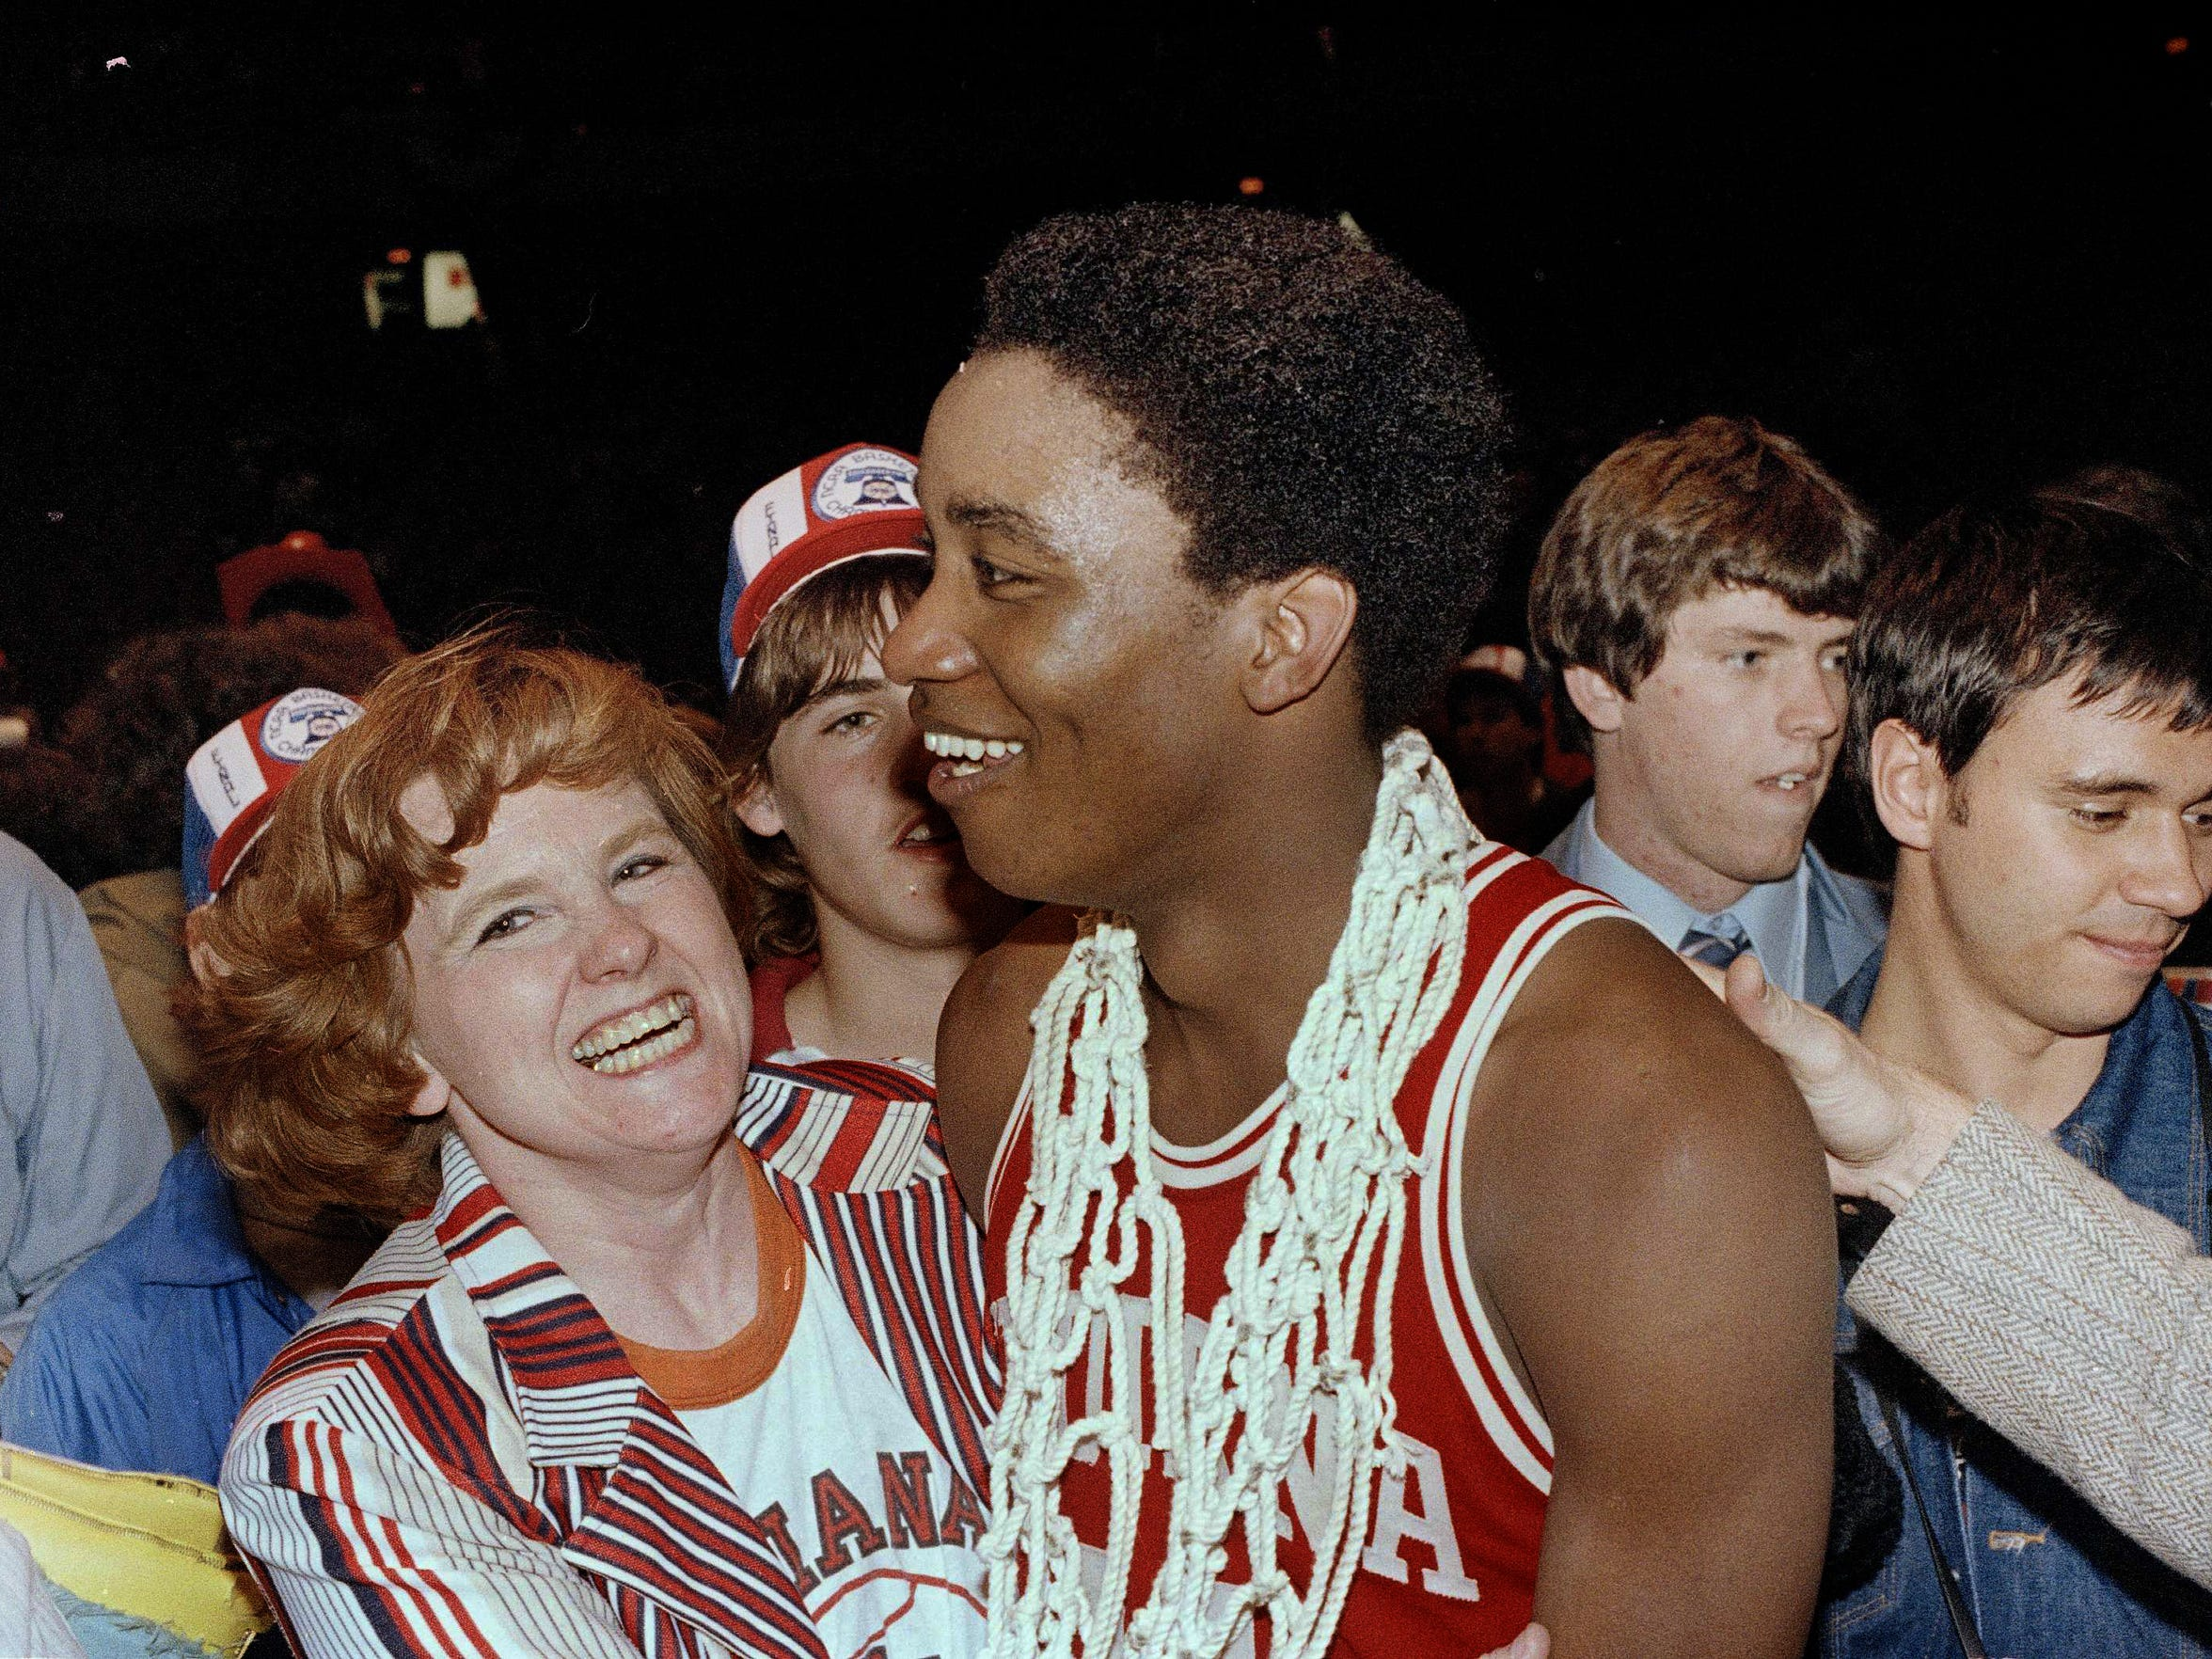 Isiah Thomas of Indiana University wears the net from the basket around his neck and is surrounded by fans after his team won over North Carolina, 63-50, in the final NCAA championship game, March 31, 1981.